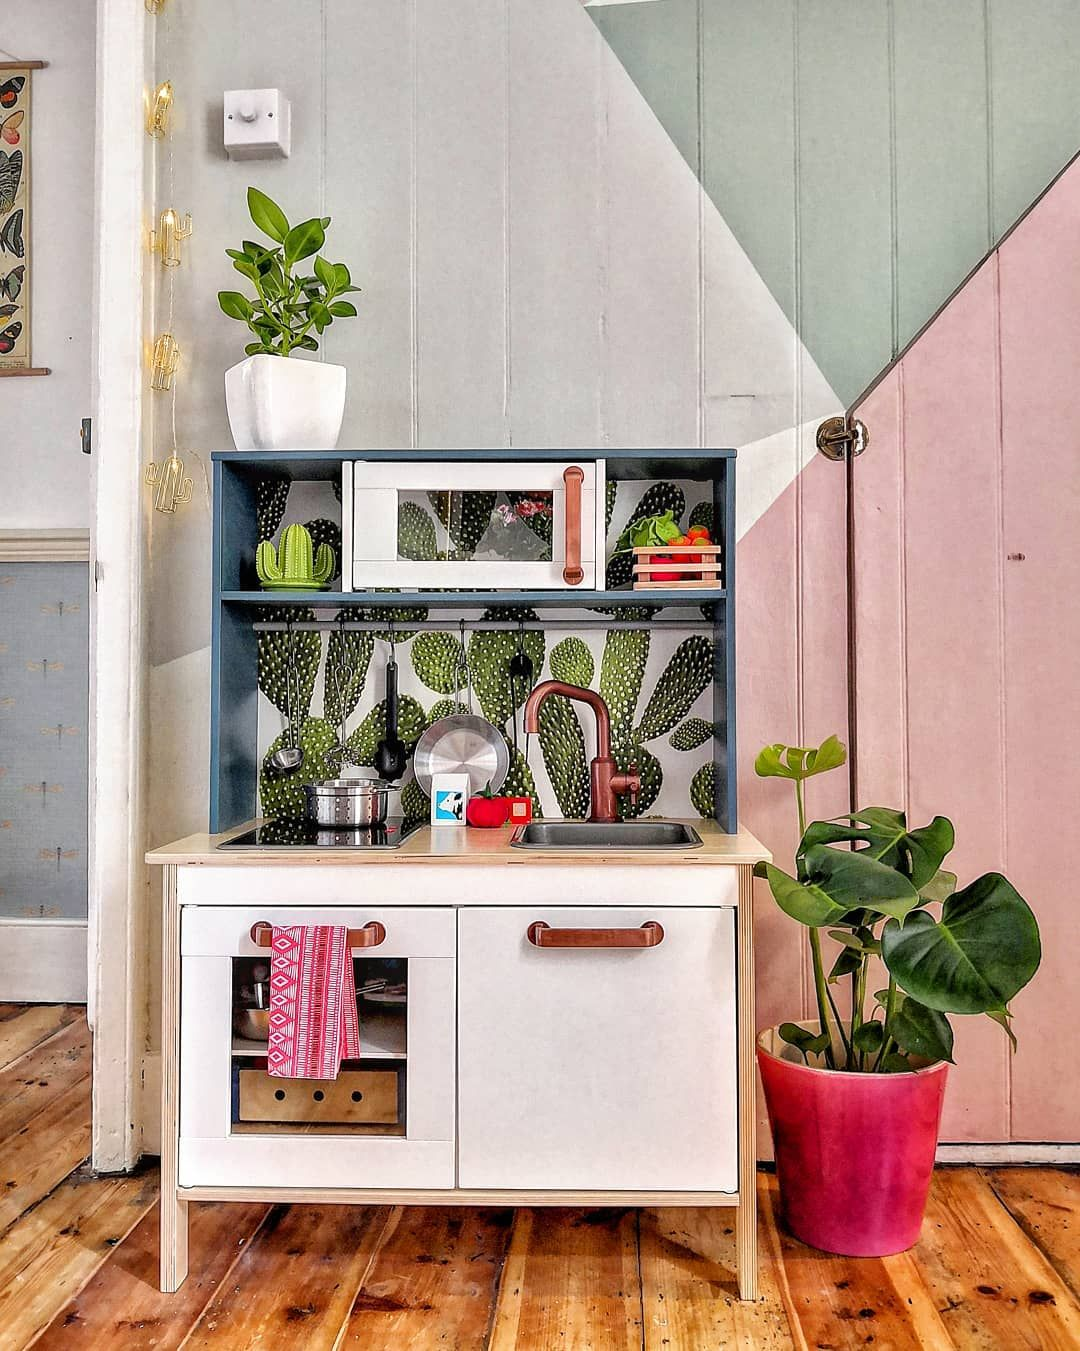 Ikea play kitchen hack with colourful wall backdrop behind